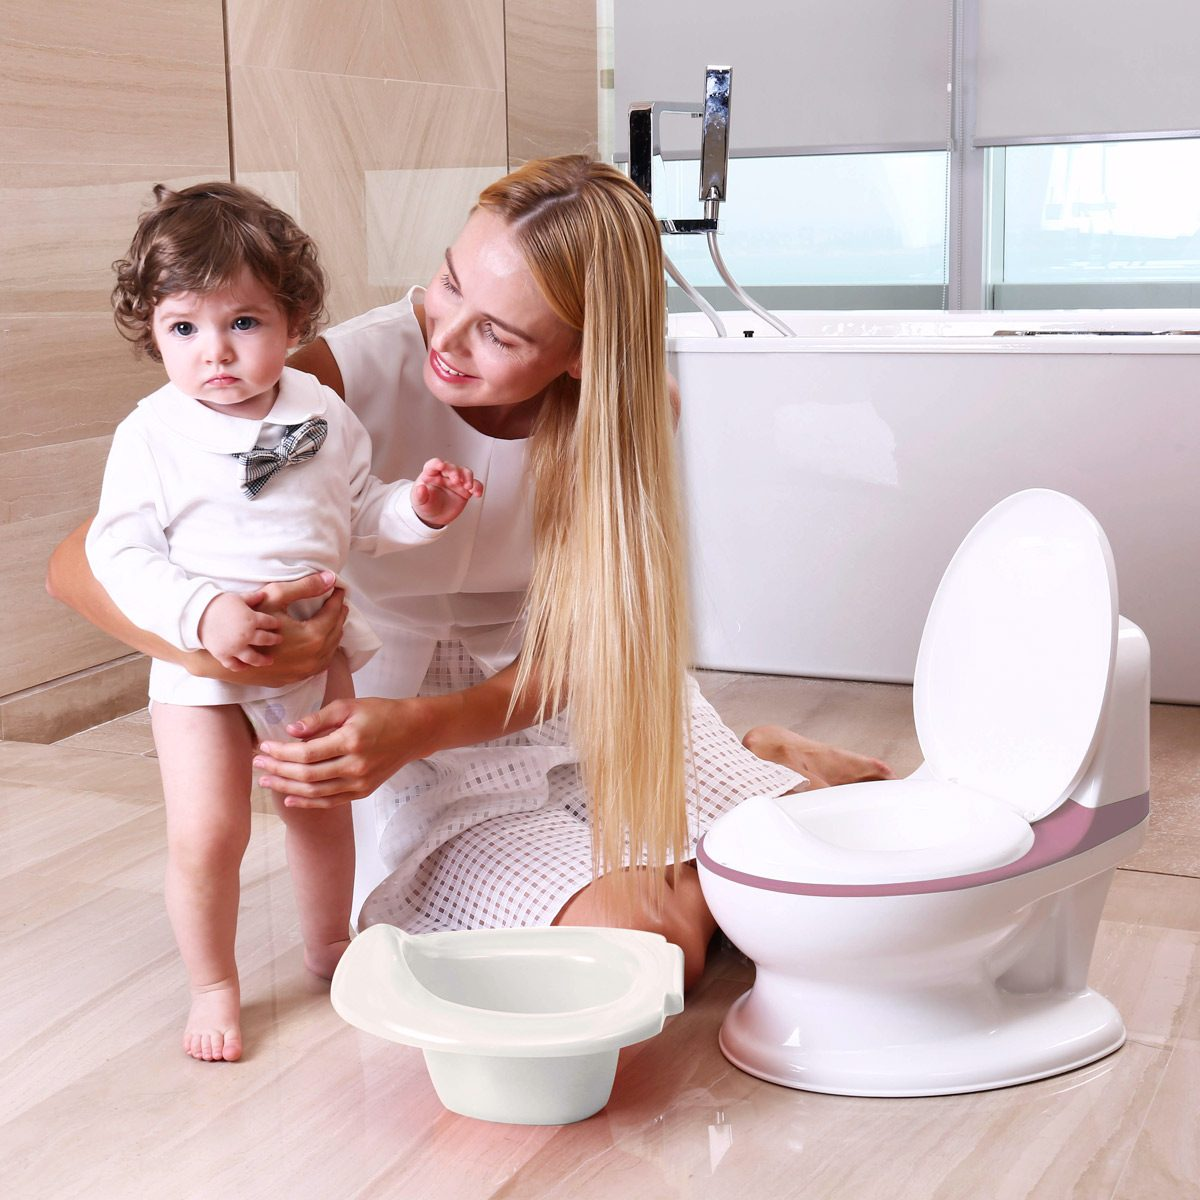 The Pote Plus potty is easy to clean